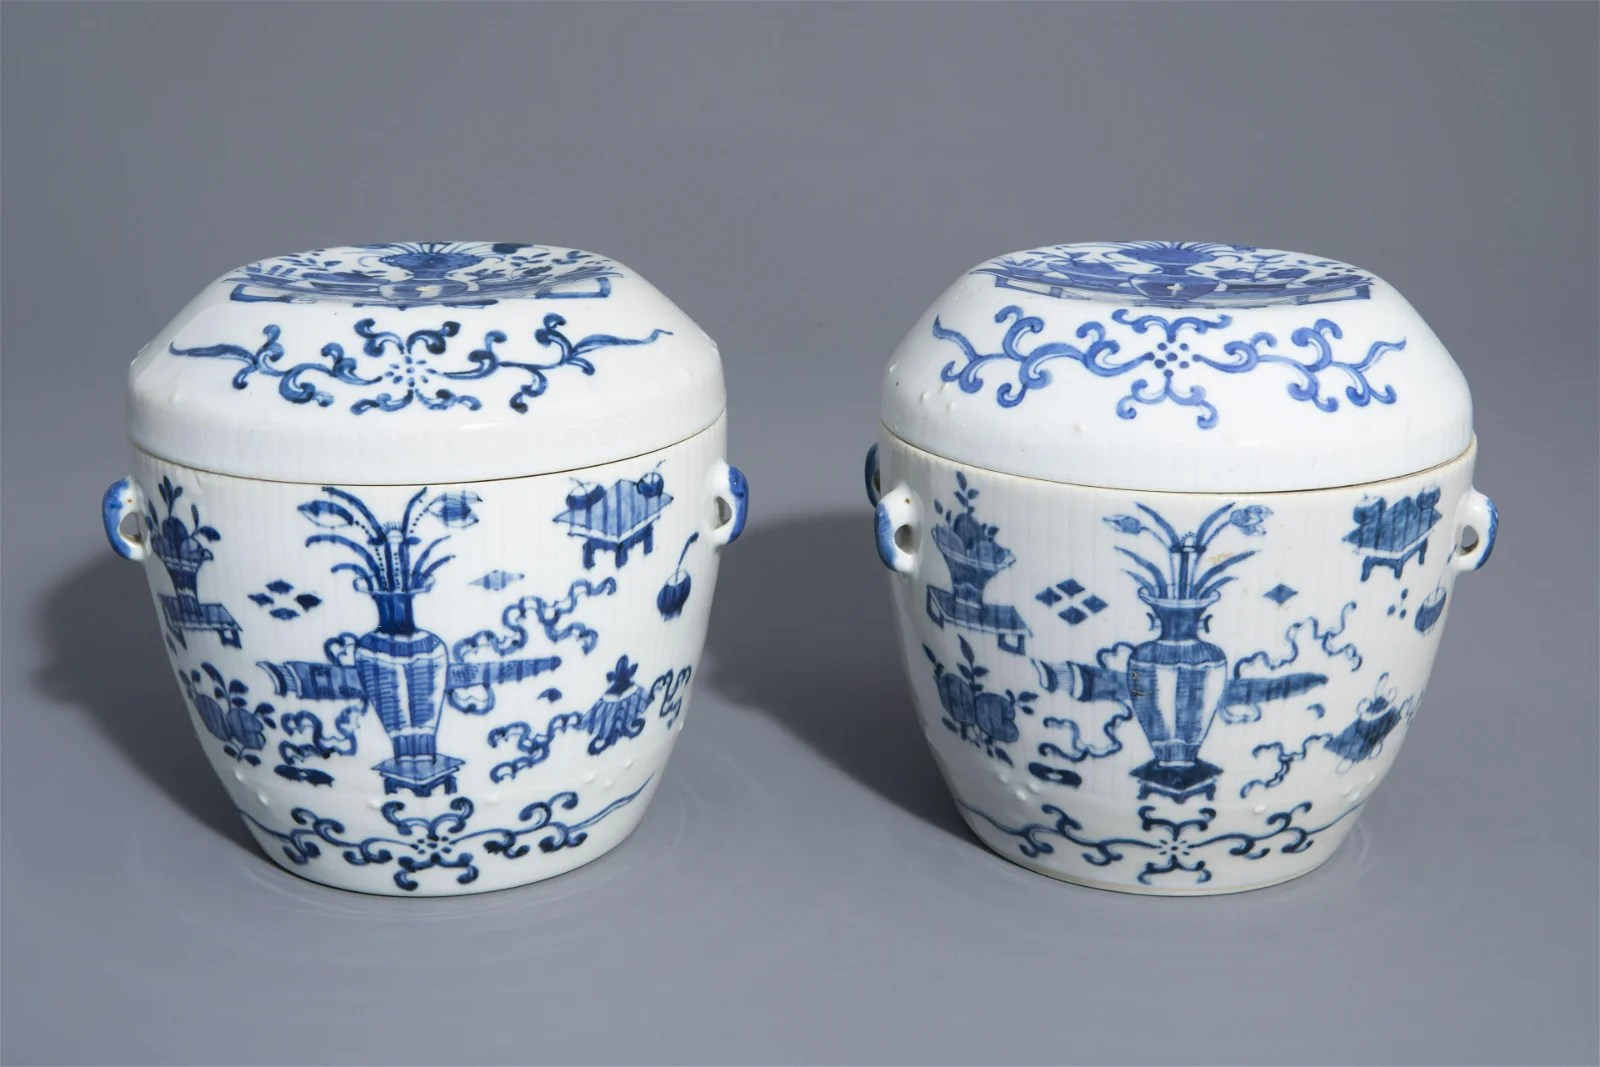 A pair of Chinese blue and white covered bowls with